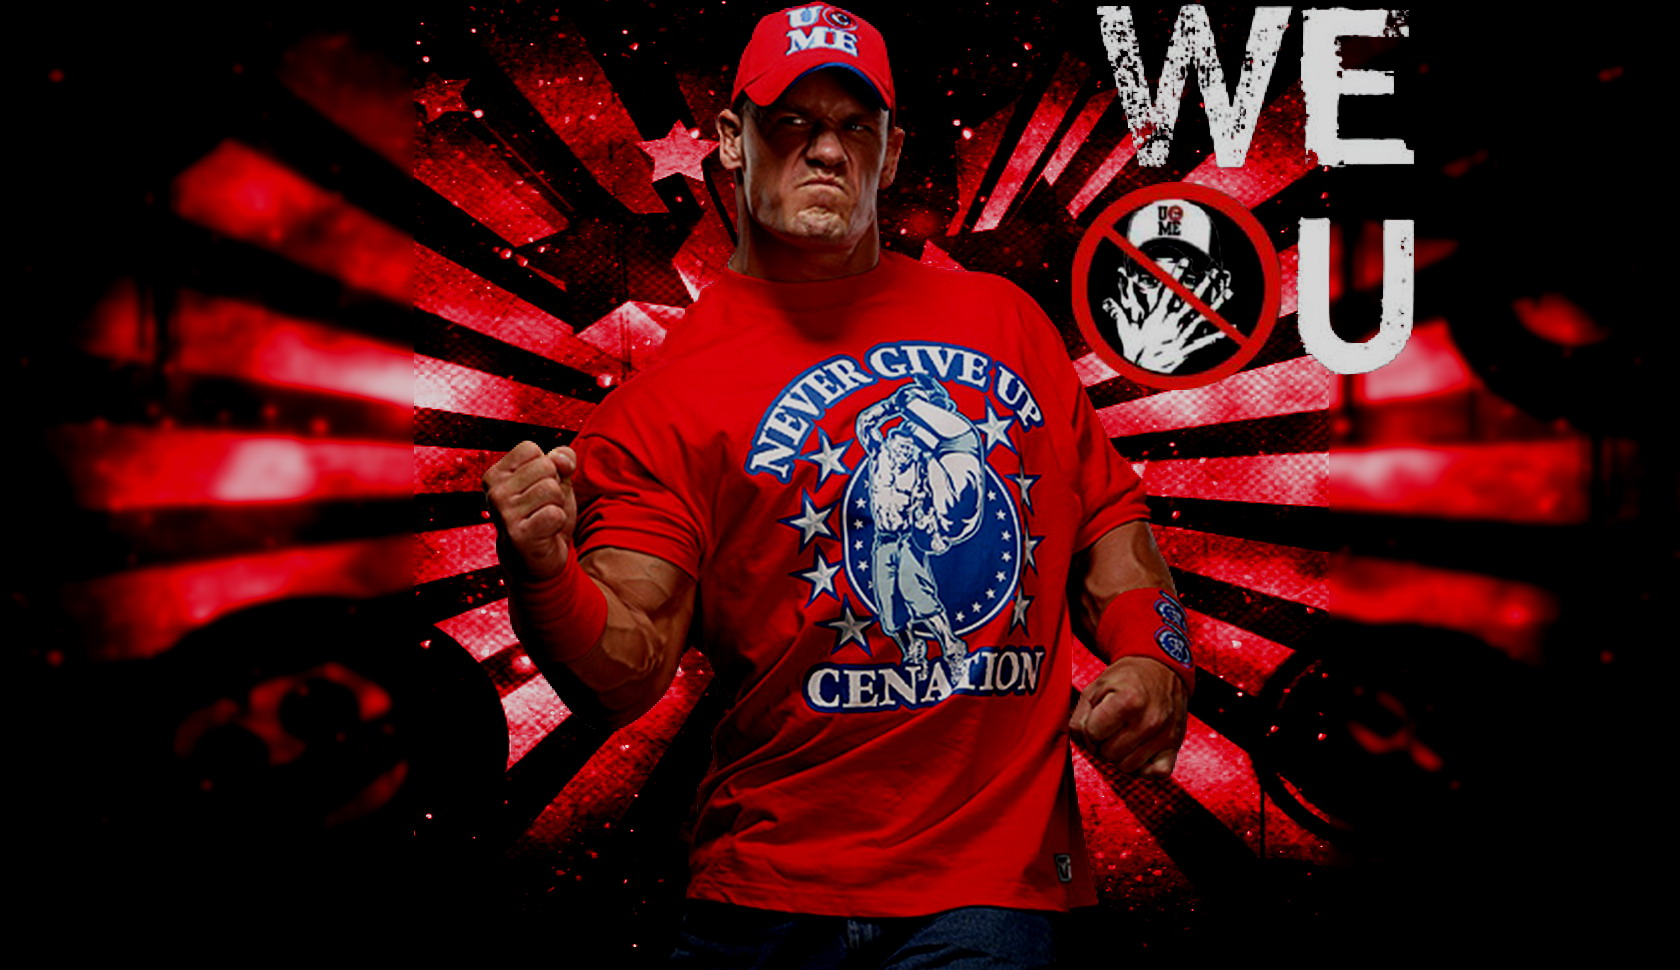 john cena wallpaper red